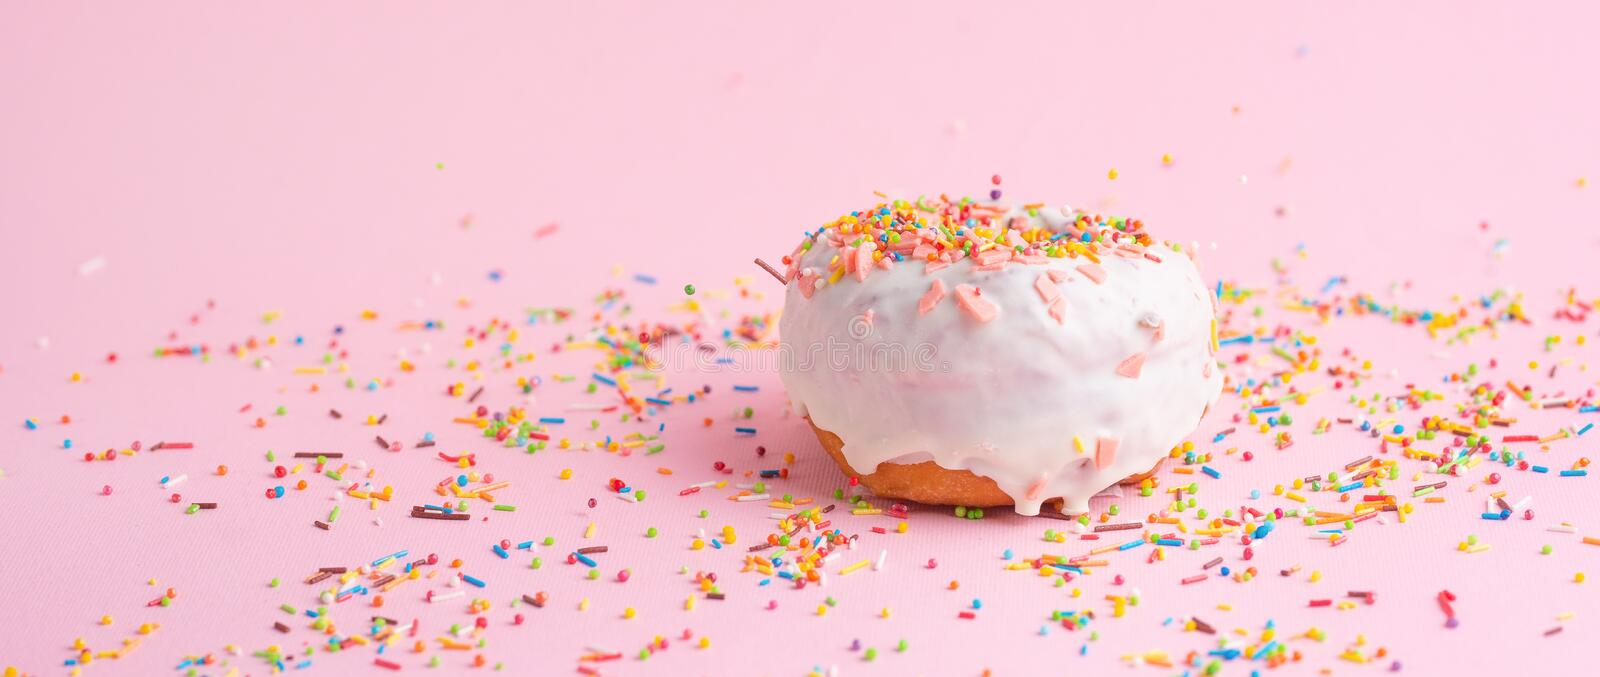 Sprinkle pink donut. on a pink background with space for design. Banner. Sprinkles cake calories eat sugar colorful dough iced pastry food dessert doughnut royalty free stock photo